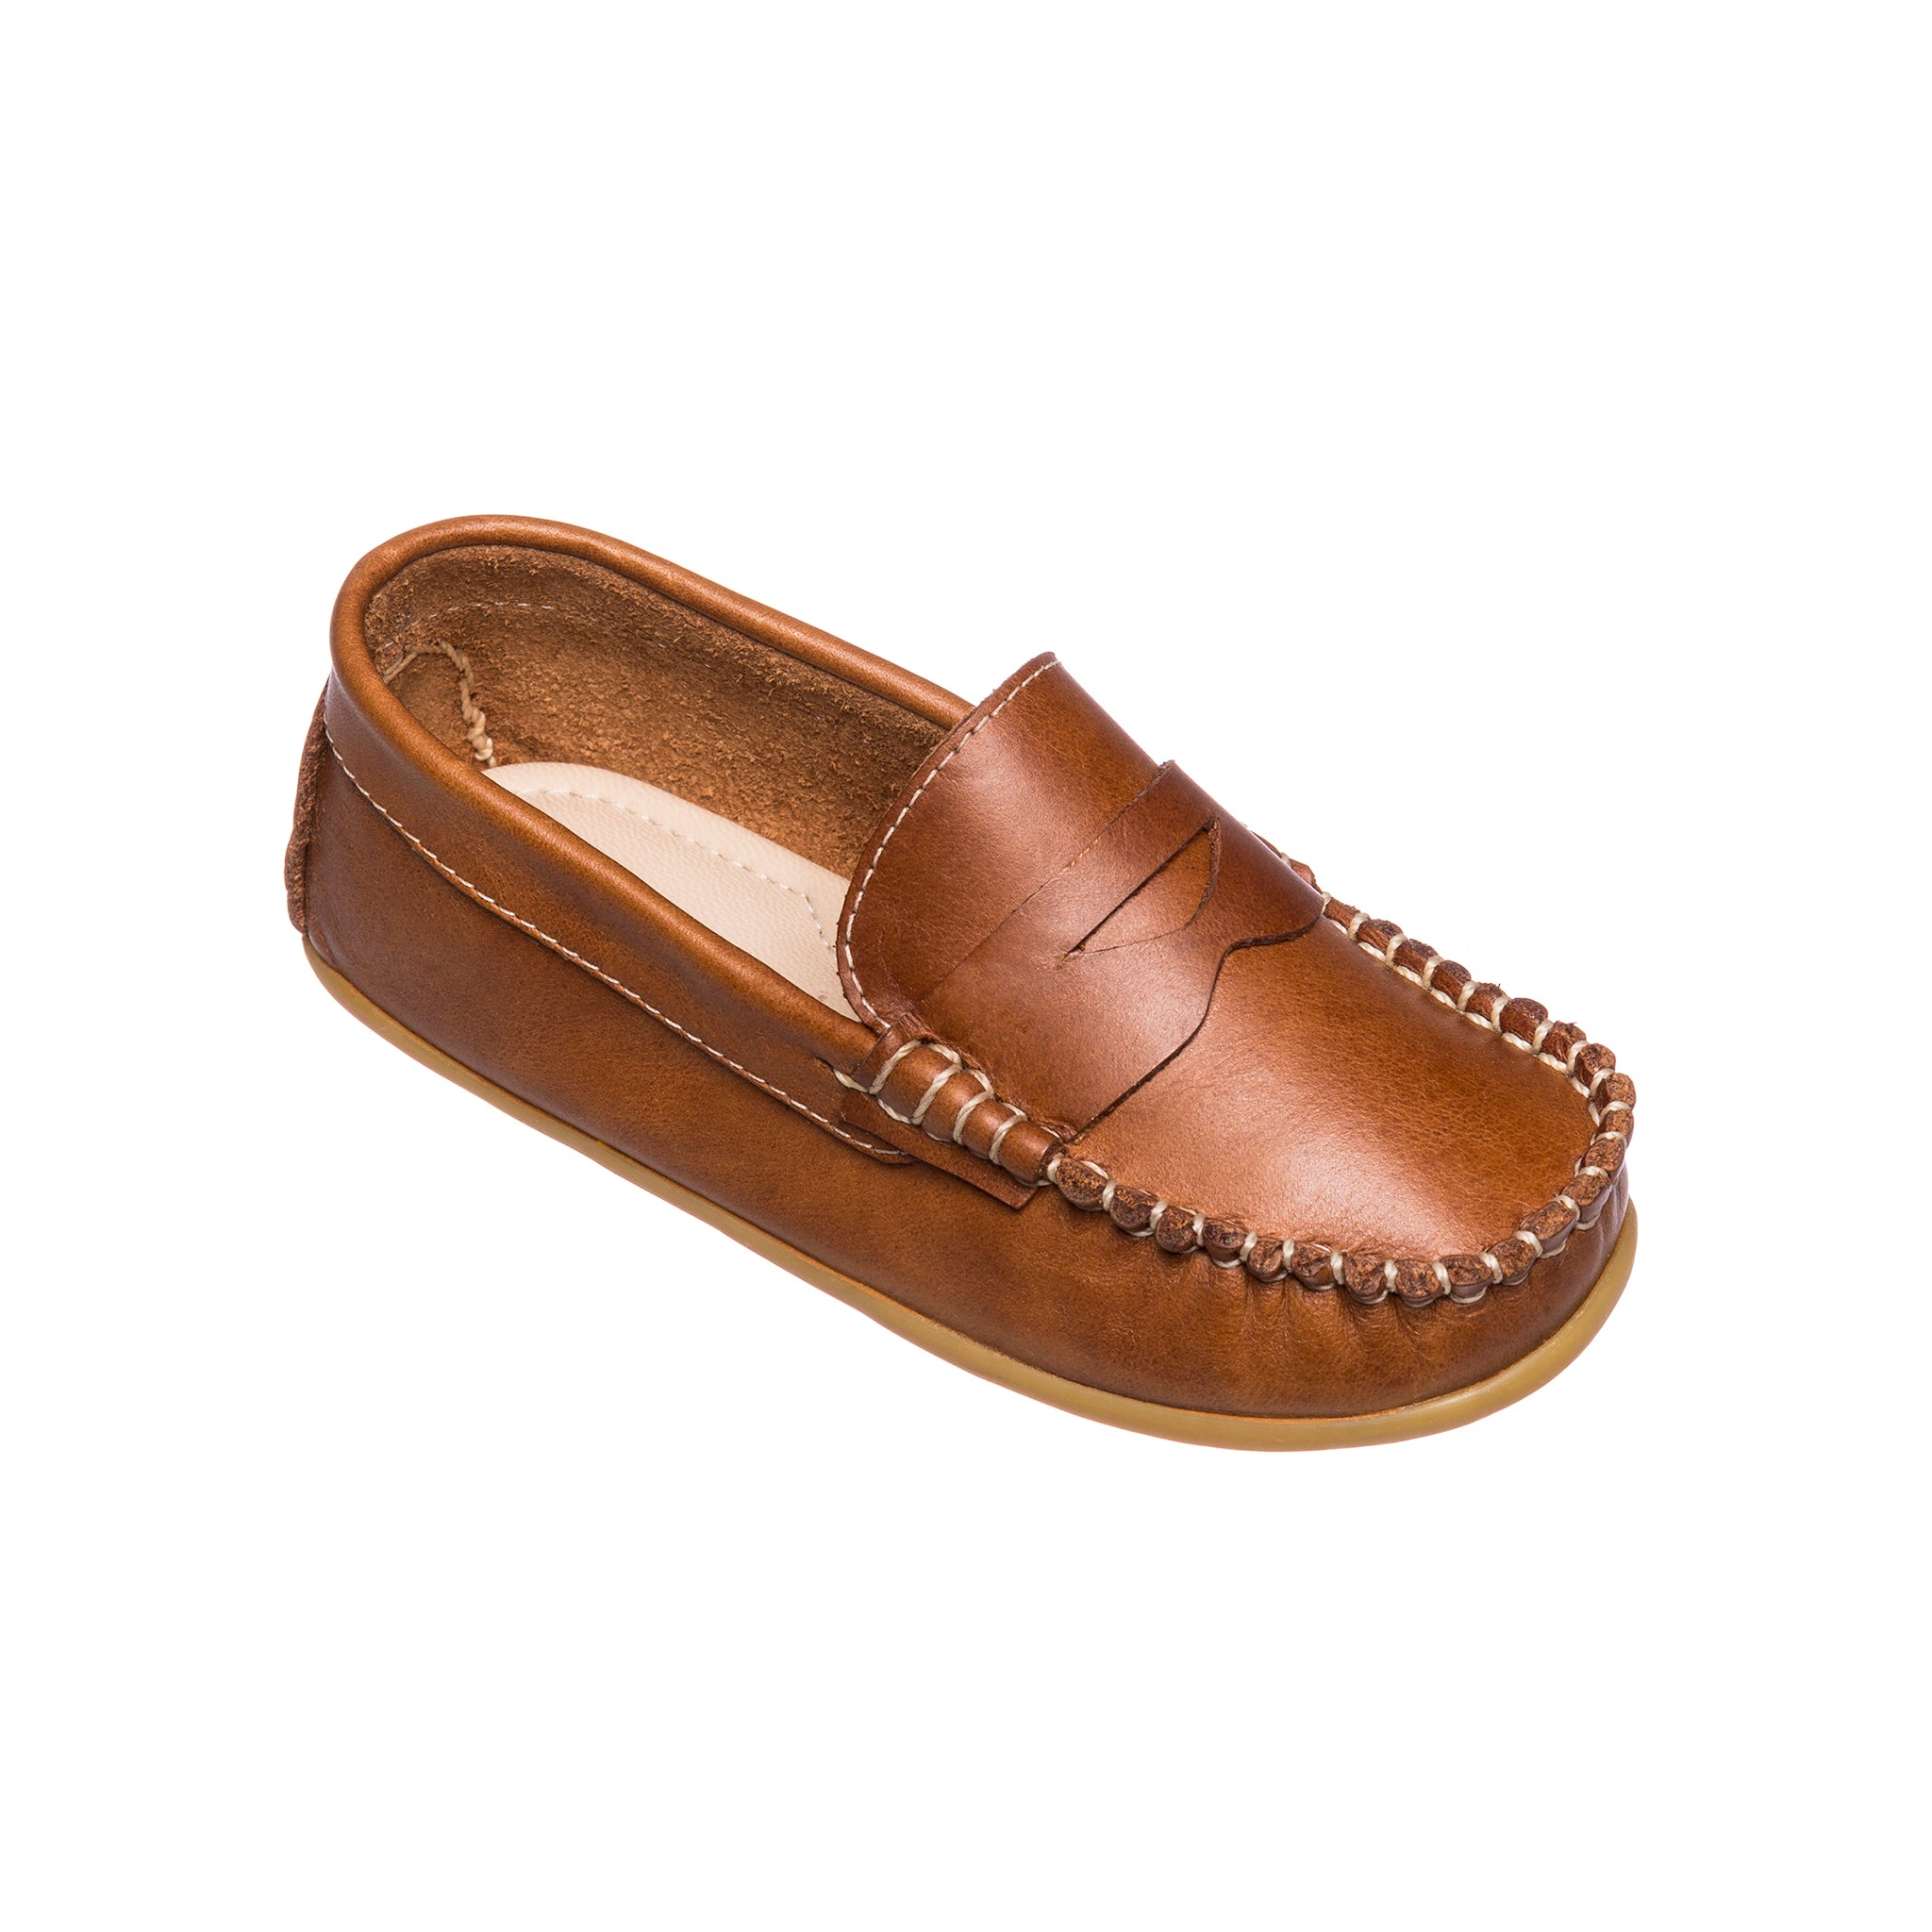 High-End Kids Shoes   Boys' Leather